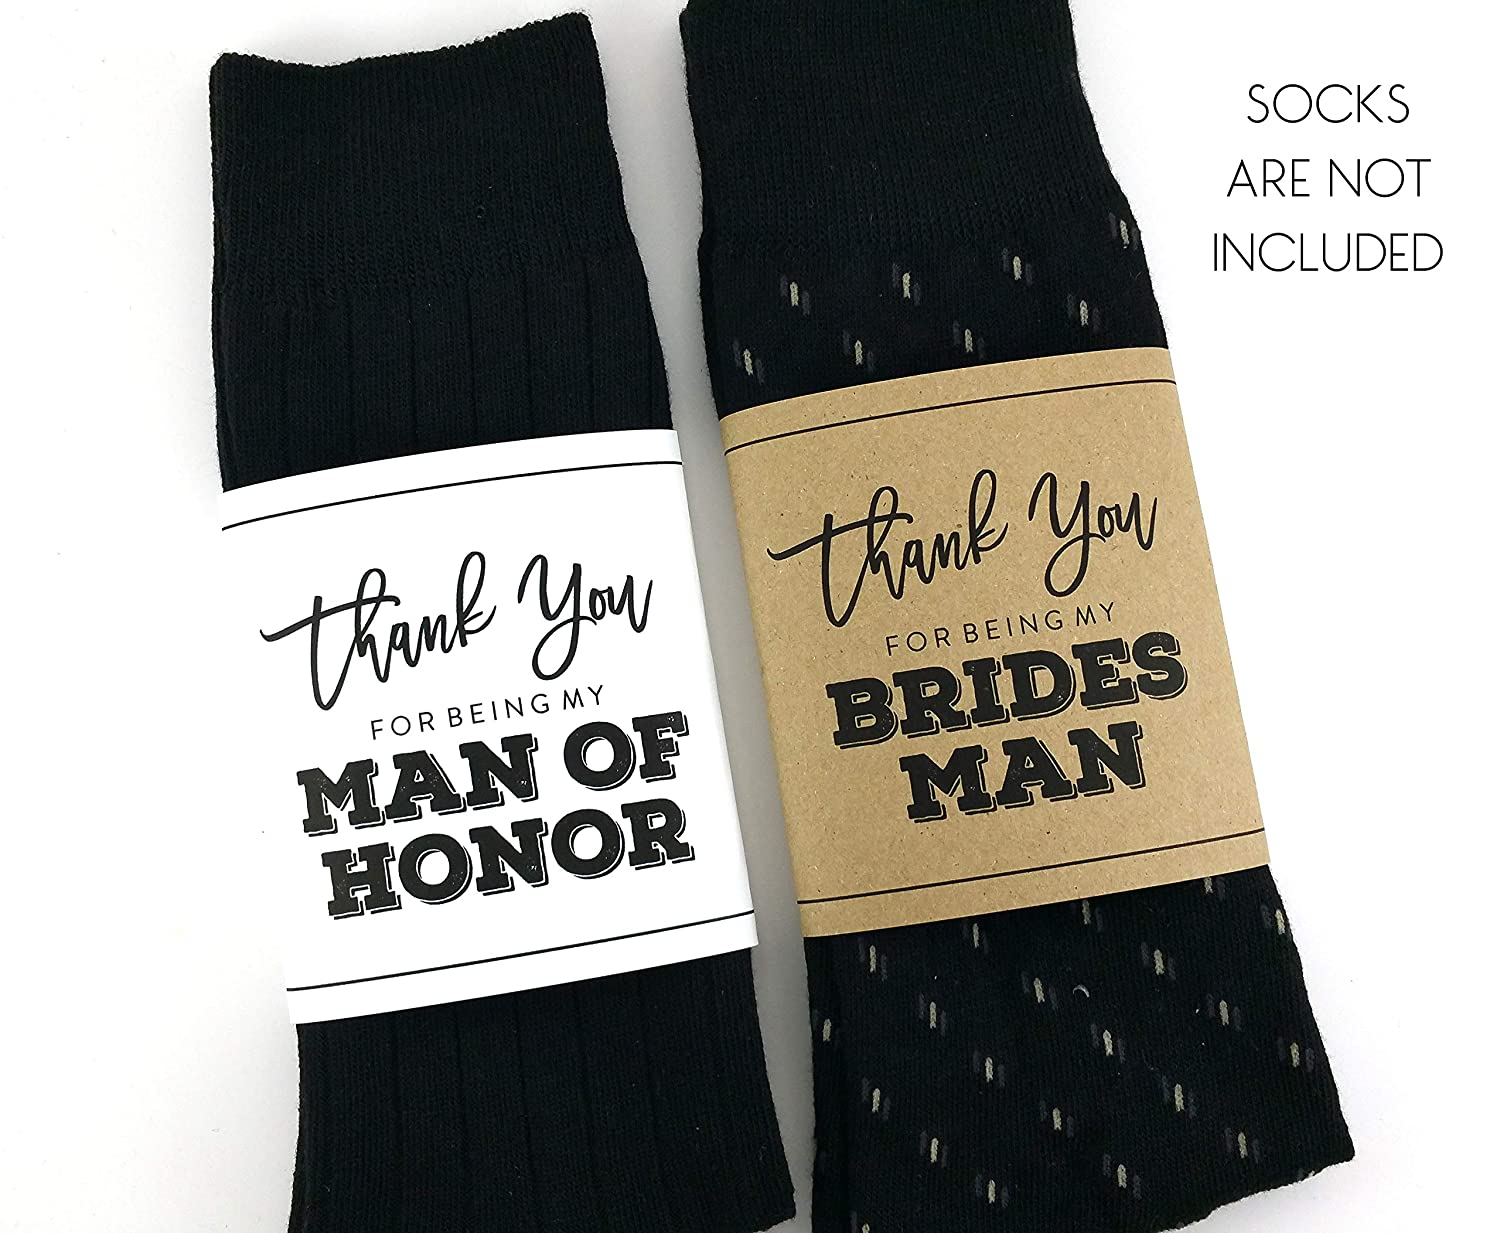 Thank you for being my Bridesman Sock Wrapper, Thank you for being my Man of Honor Sock Wrapper, Wedding Socks Wrapper, Wedding Socks Label (SOCKS NOT INCLUDED)